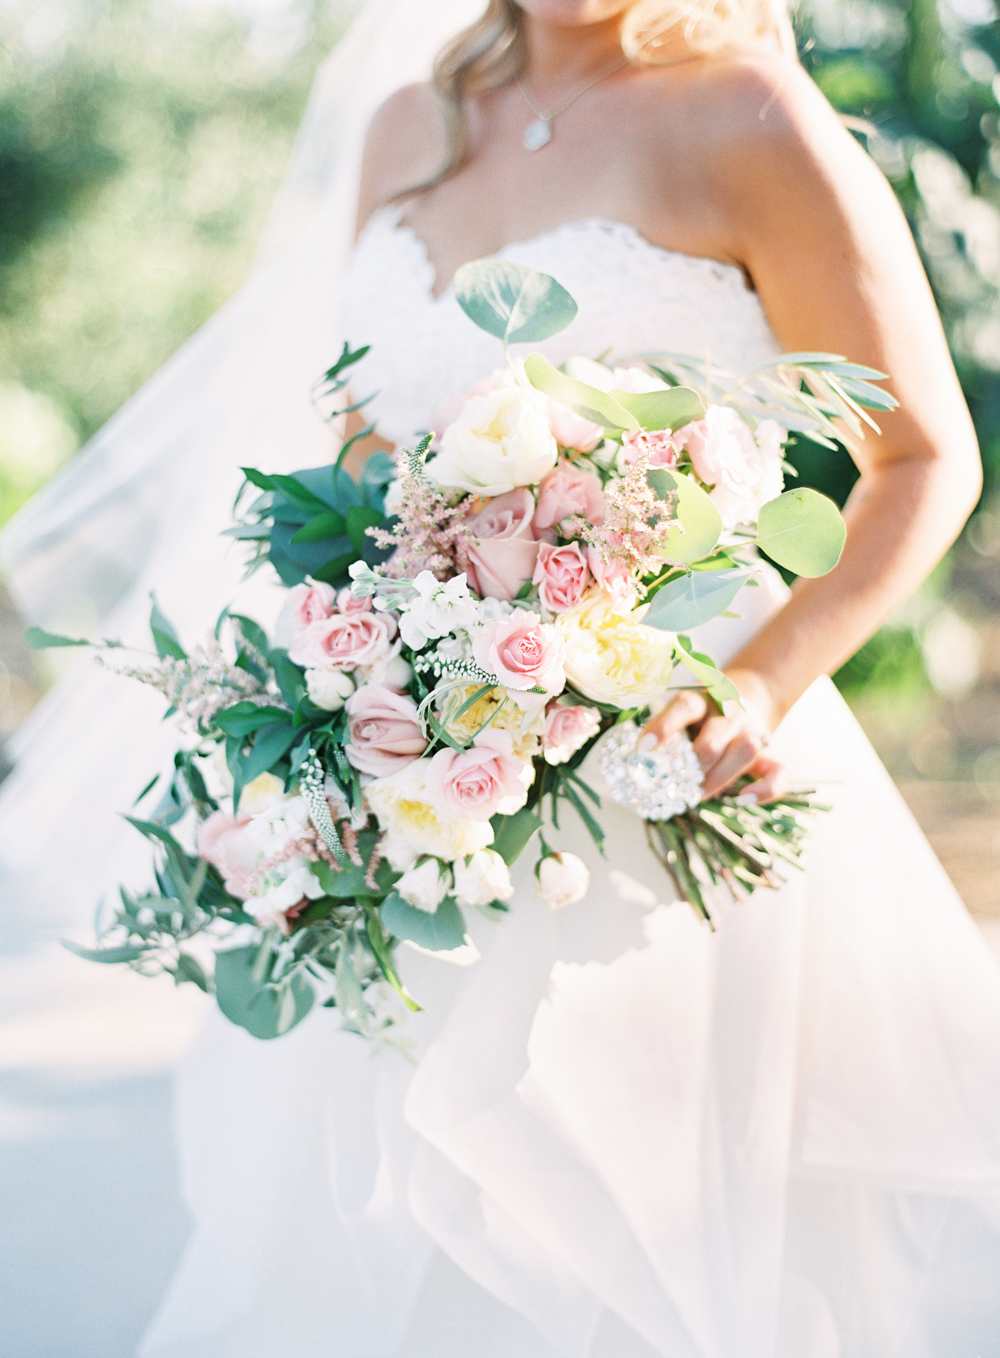 Posh Peony Bridal Bouquet | Mount Palomar Winery Wedding | Blush and Lavender | San Diego wedding photographer | Temecula wedding photographer | Southern California film photographer | Whiskers and Willow Photography